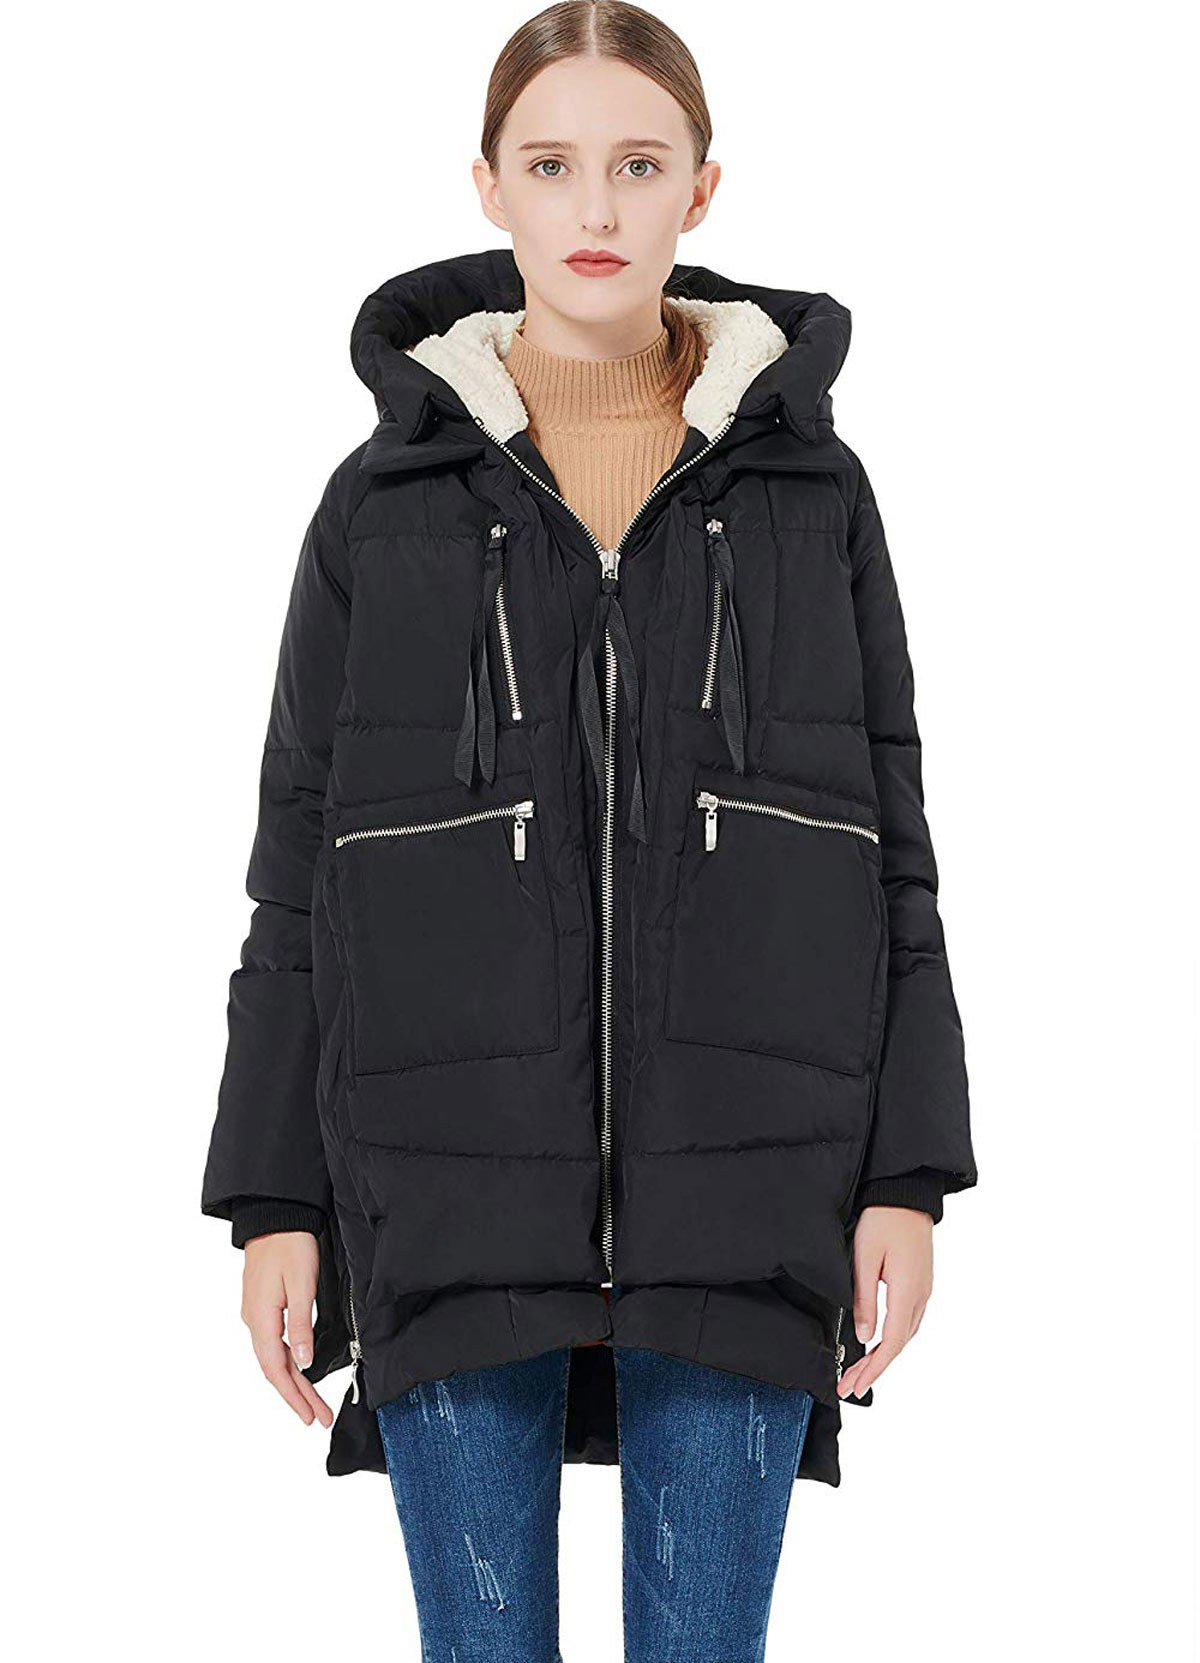 pOrolay Women's Thickened Down Jacket del139.99del 83.98 a hrefhttpsamzn.to2W0cnhH relnofollowAmazonap